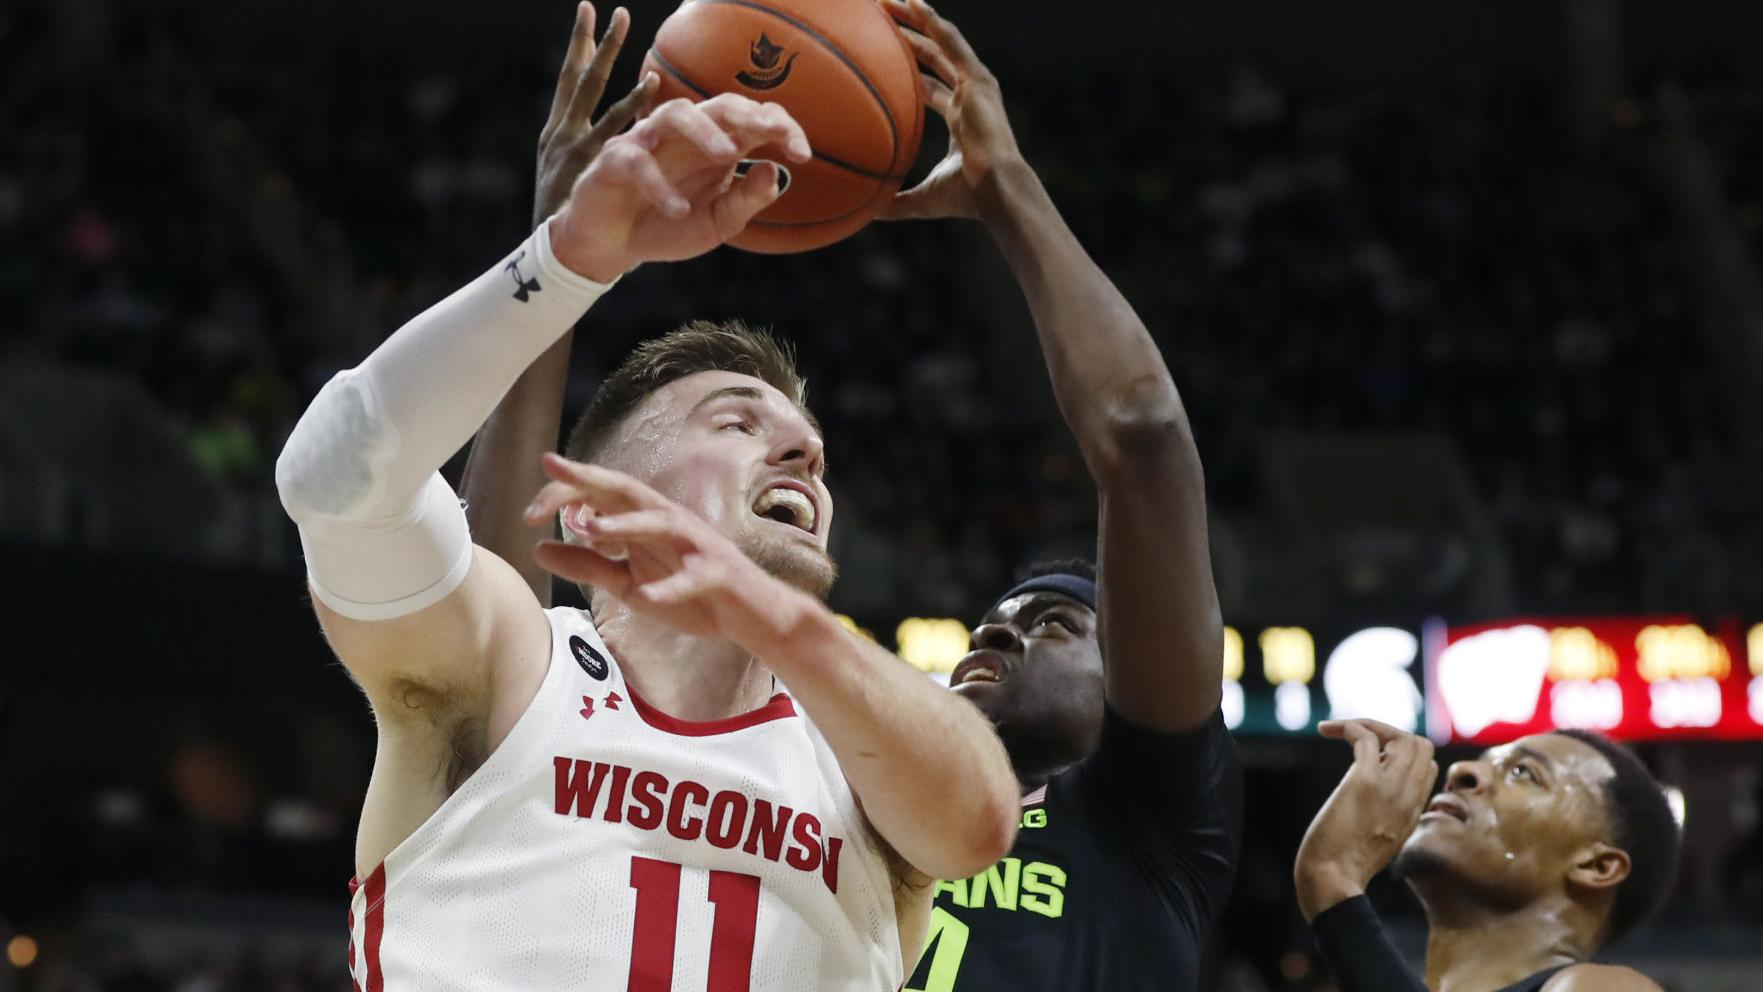 Heat check: Wisconsin Badgers fail Big Ten test as Michigan State Spartans continue dominance